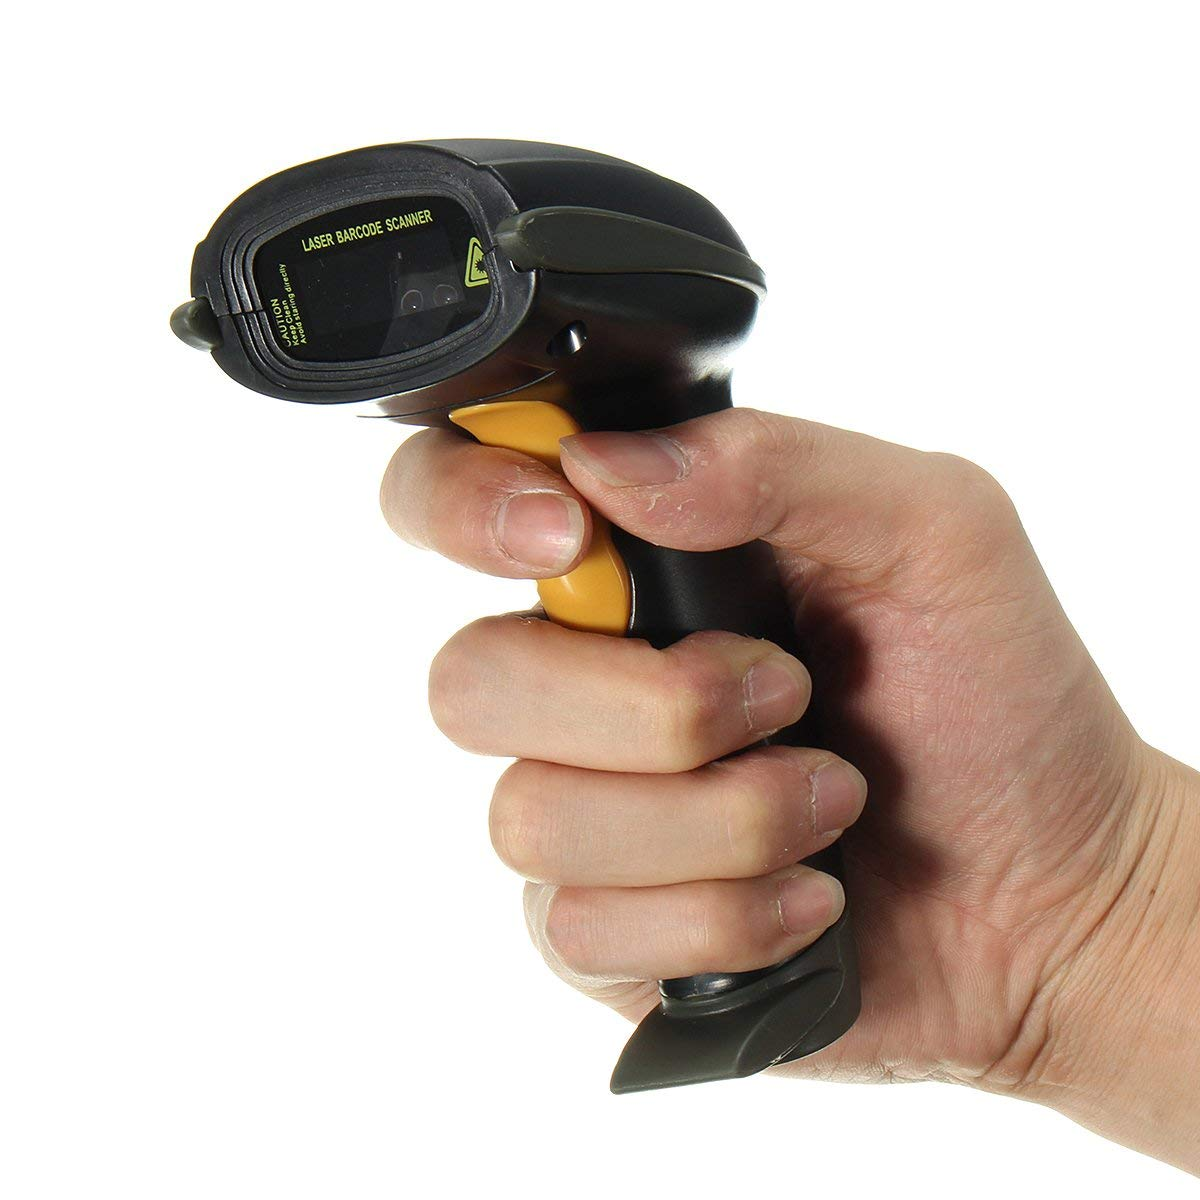 Handheld POS USB Laser Barcode Scanner Automatic Barcode Scan Reader with Stand